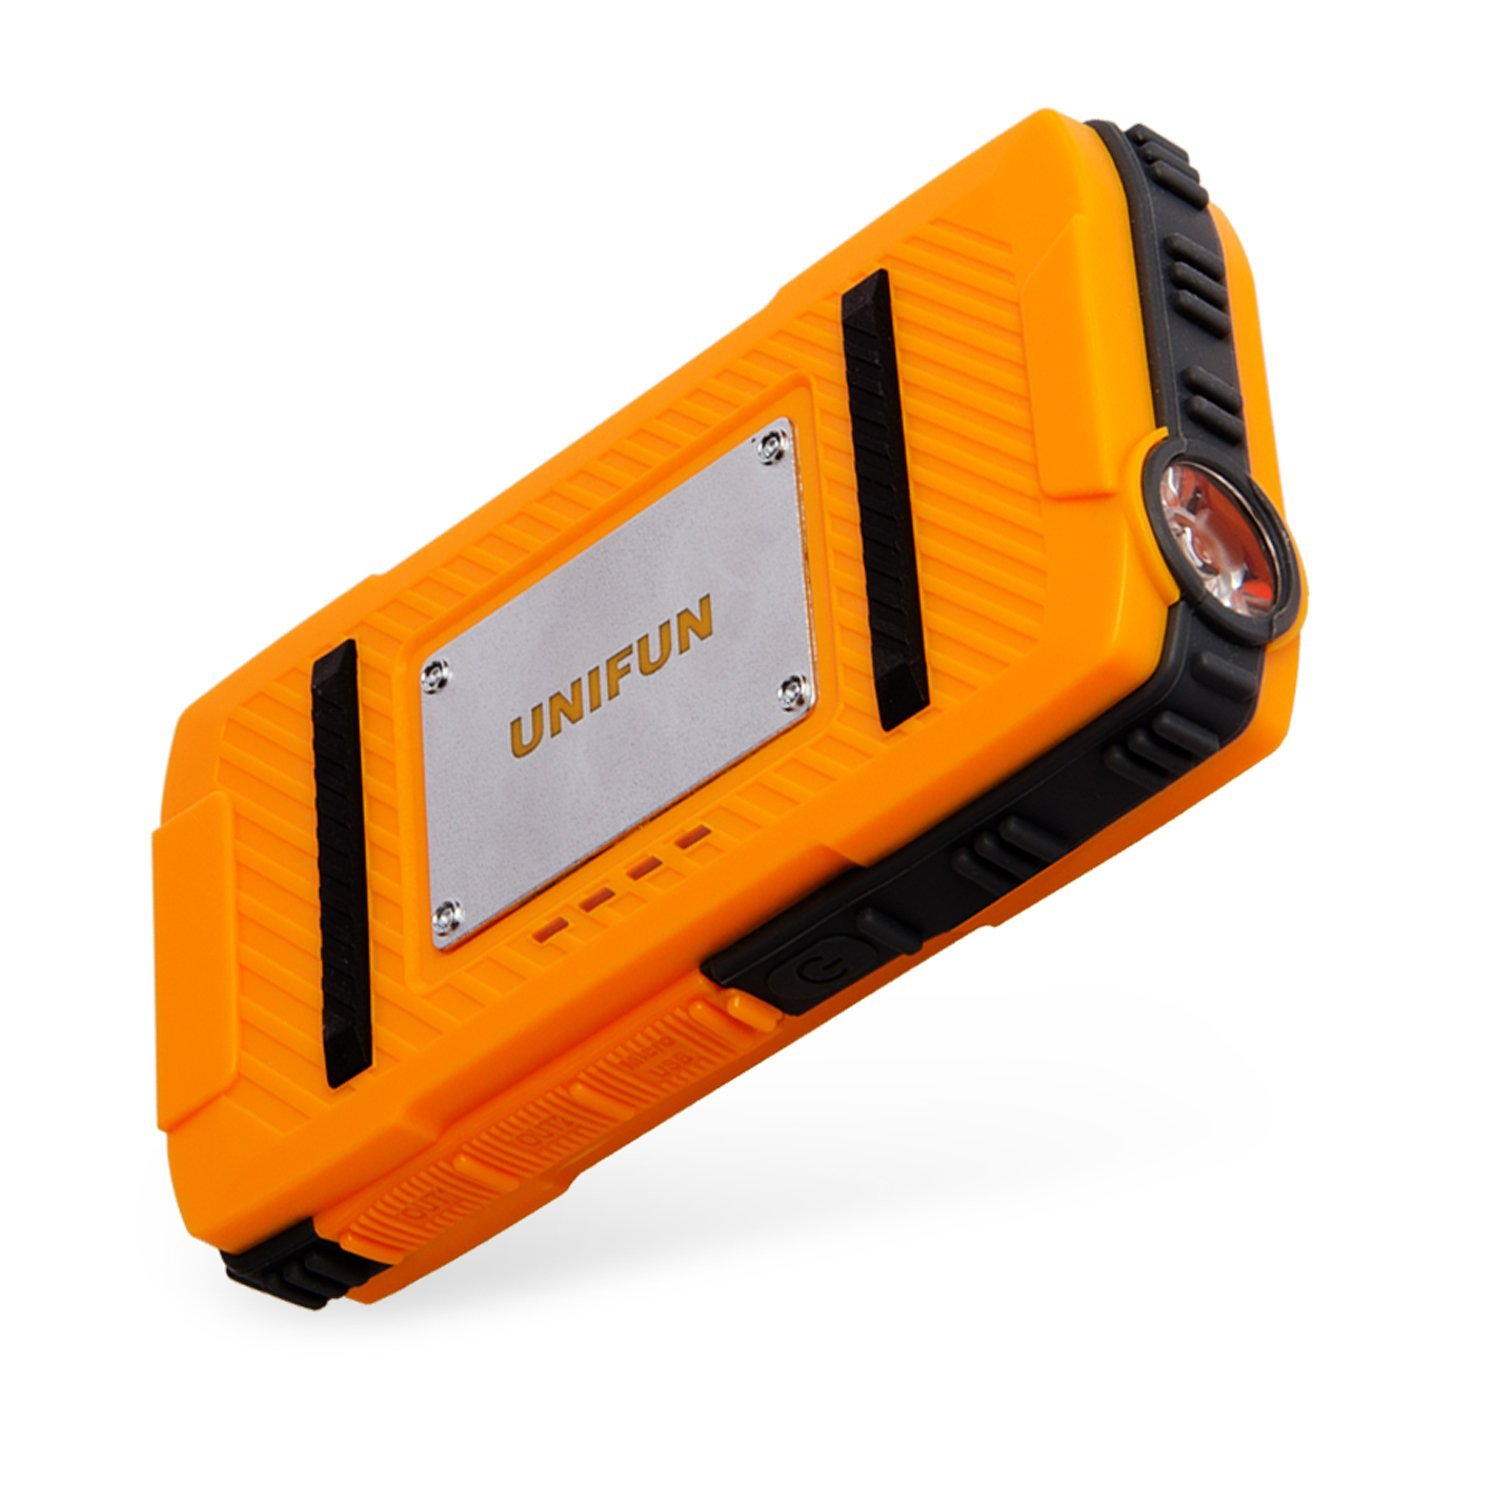 unifun-10400mah-waterproof-external-battery-power-bank